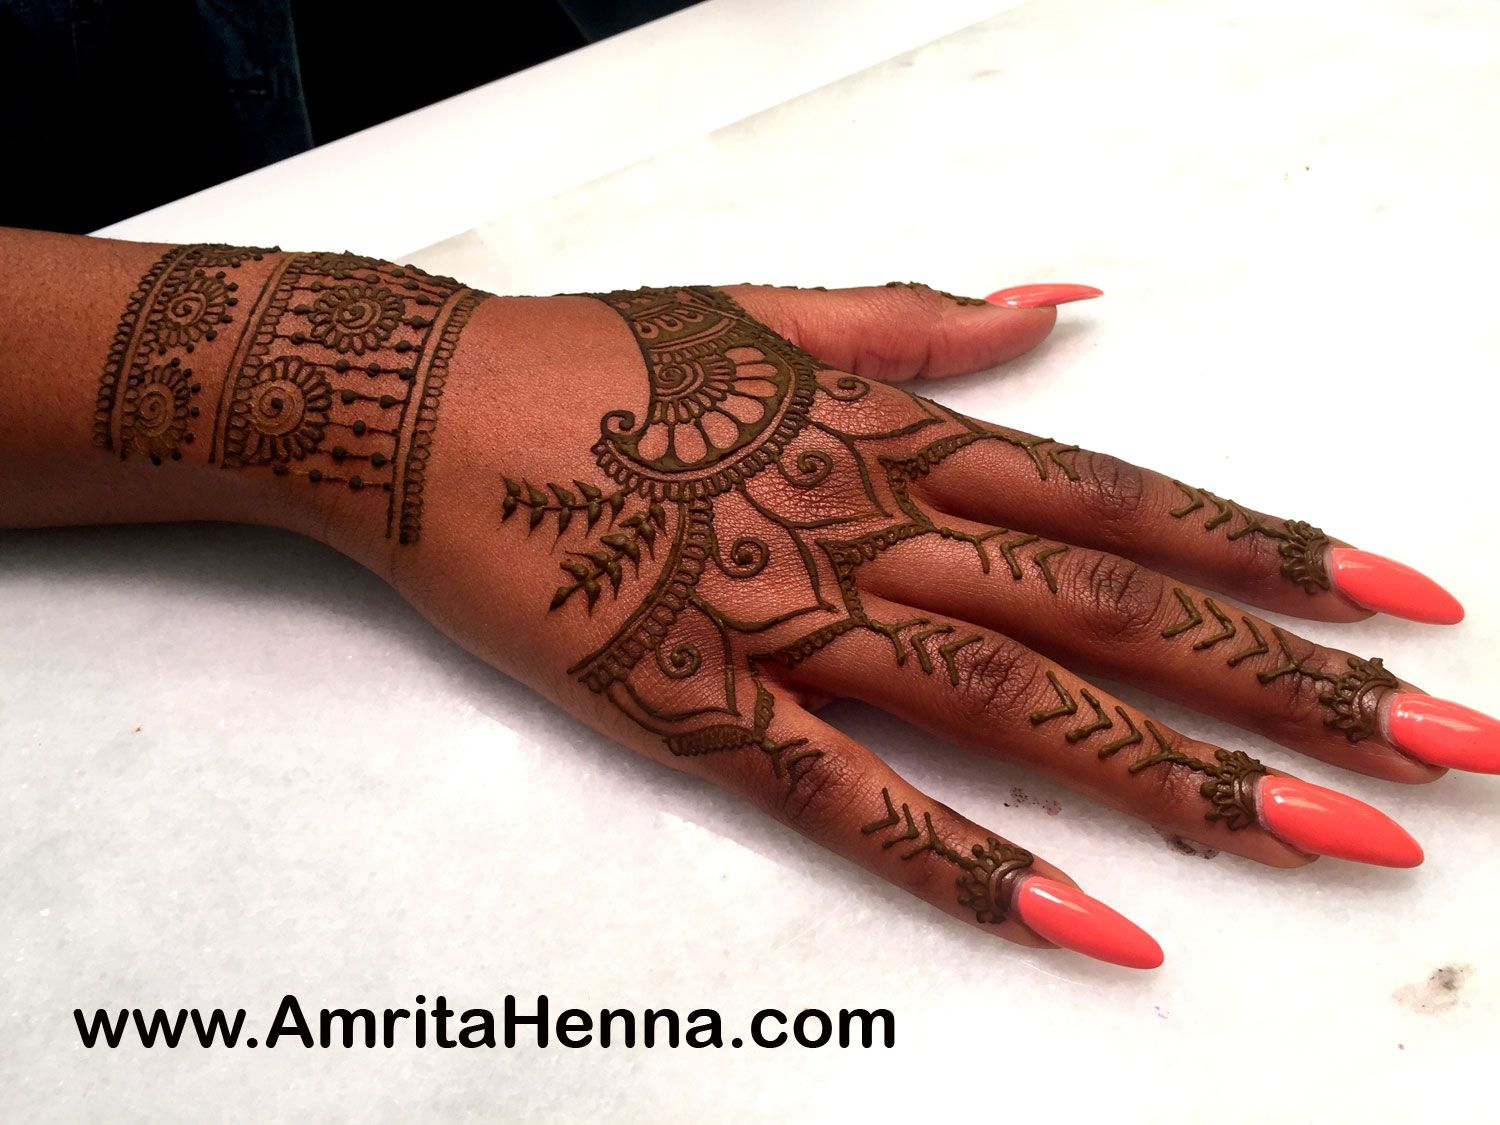 Best Rihanna Tattoo Henna Design Most Popular Mehndi Design Inspired By Rihanna Tattoo Henna Desi Tribal Hand Tattoos Henna Tattoo Hand Rihanna Hand Tattoo